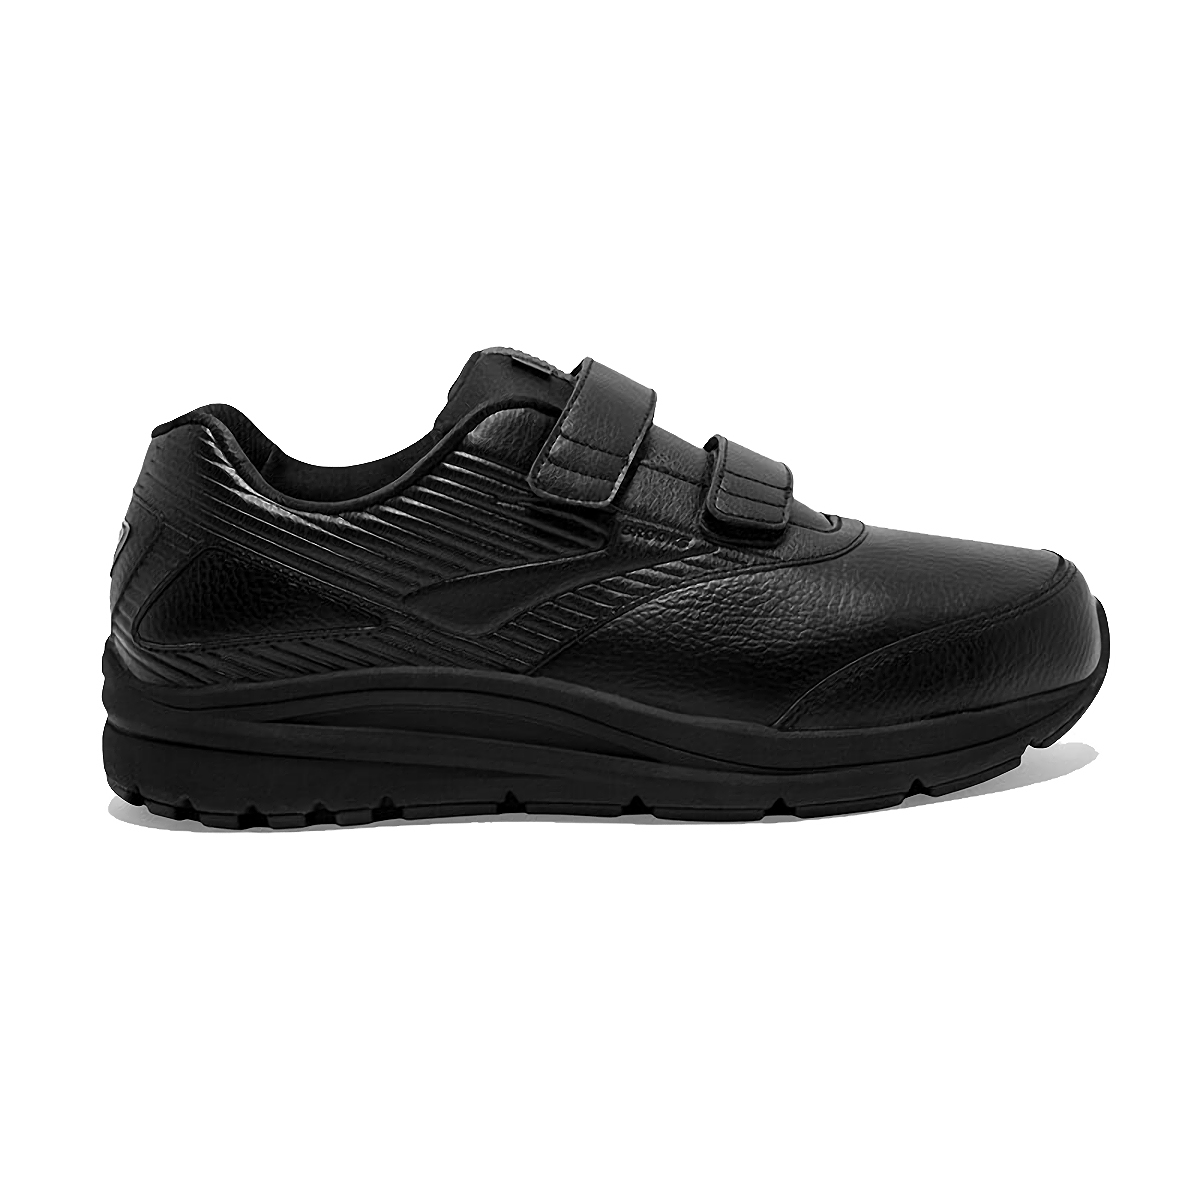 Men's Brooks Addiction Walker V-Strap 2 Walking Shoe - Color: Black/Black - Size: 7 - Width: Regular, Black, large, image 1